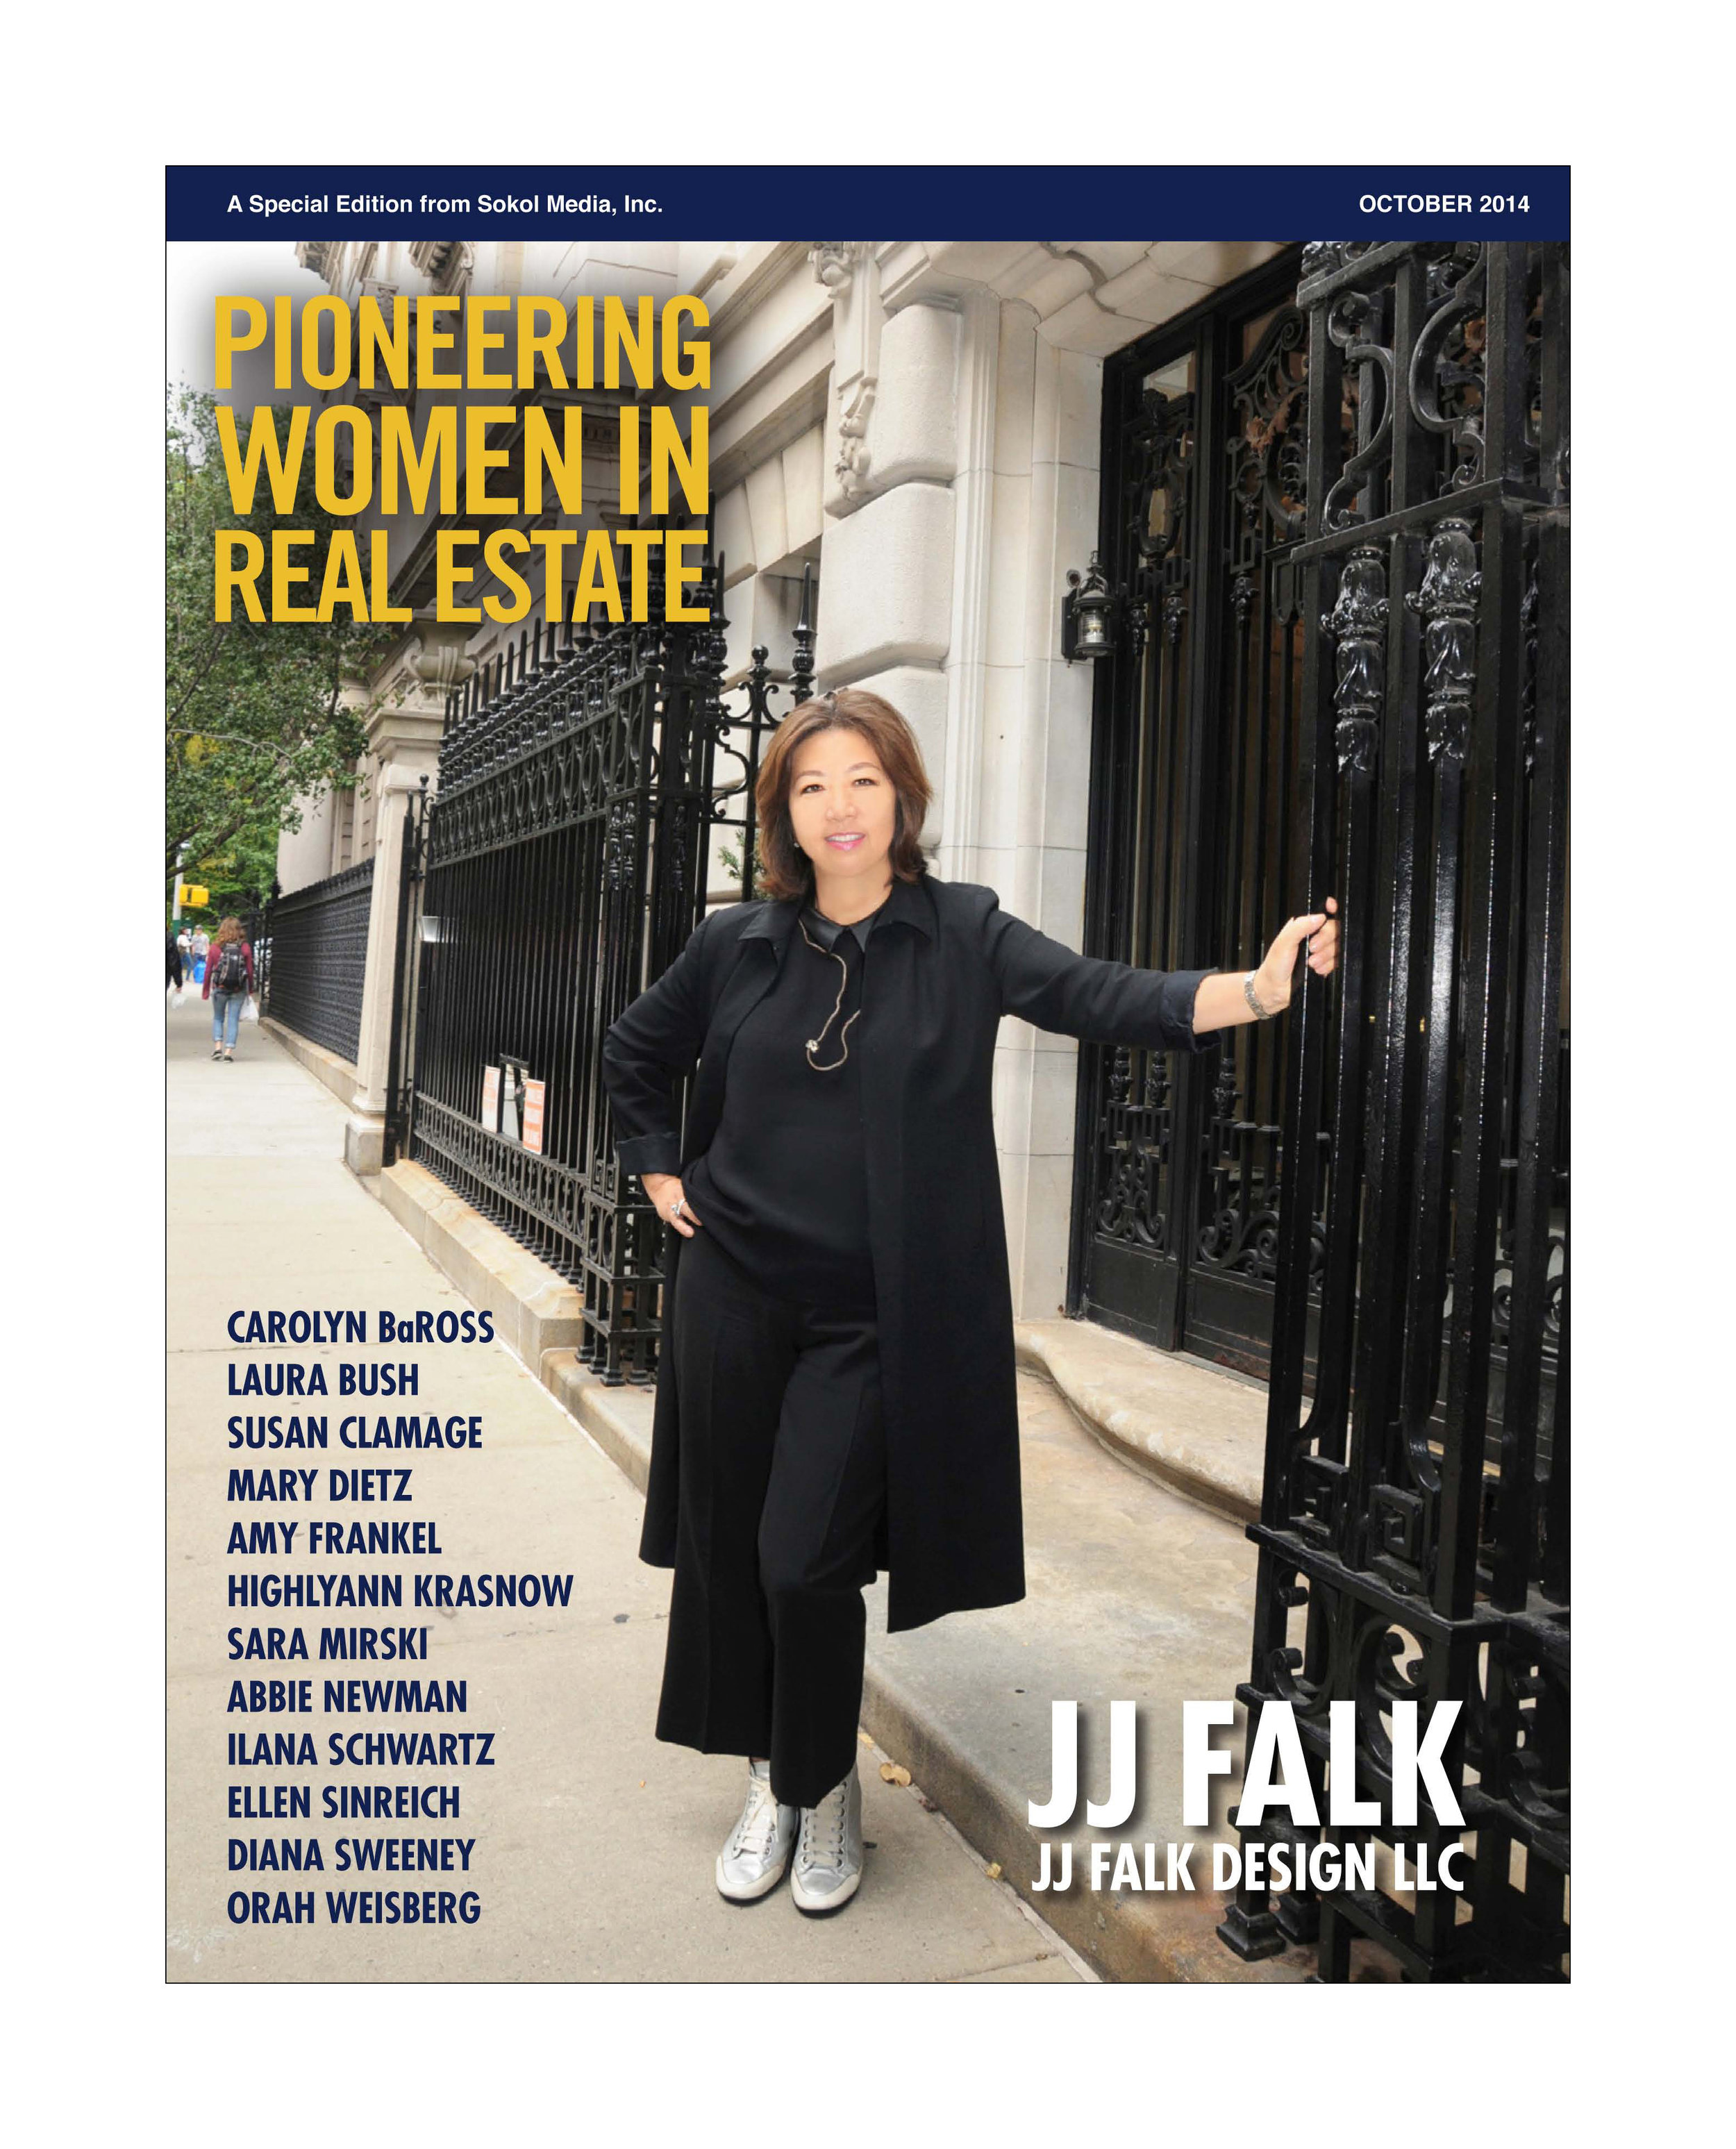 2014 Pioneering Women in Real Estate